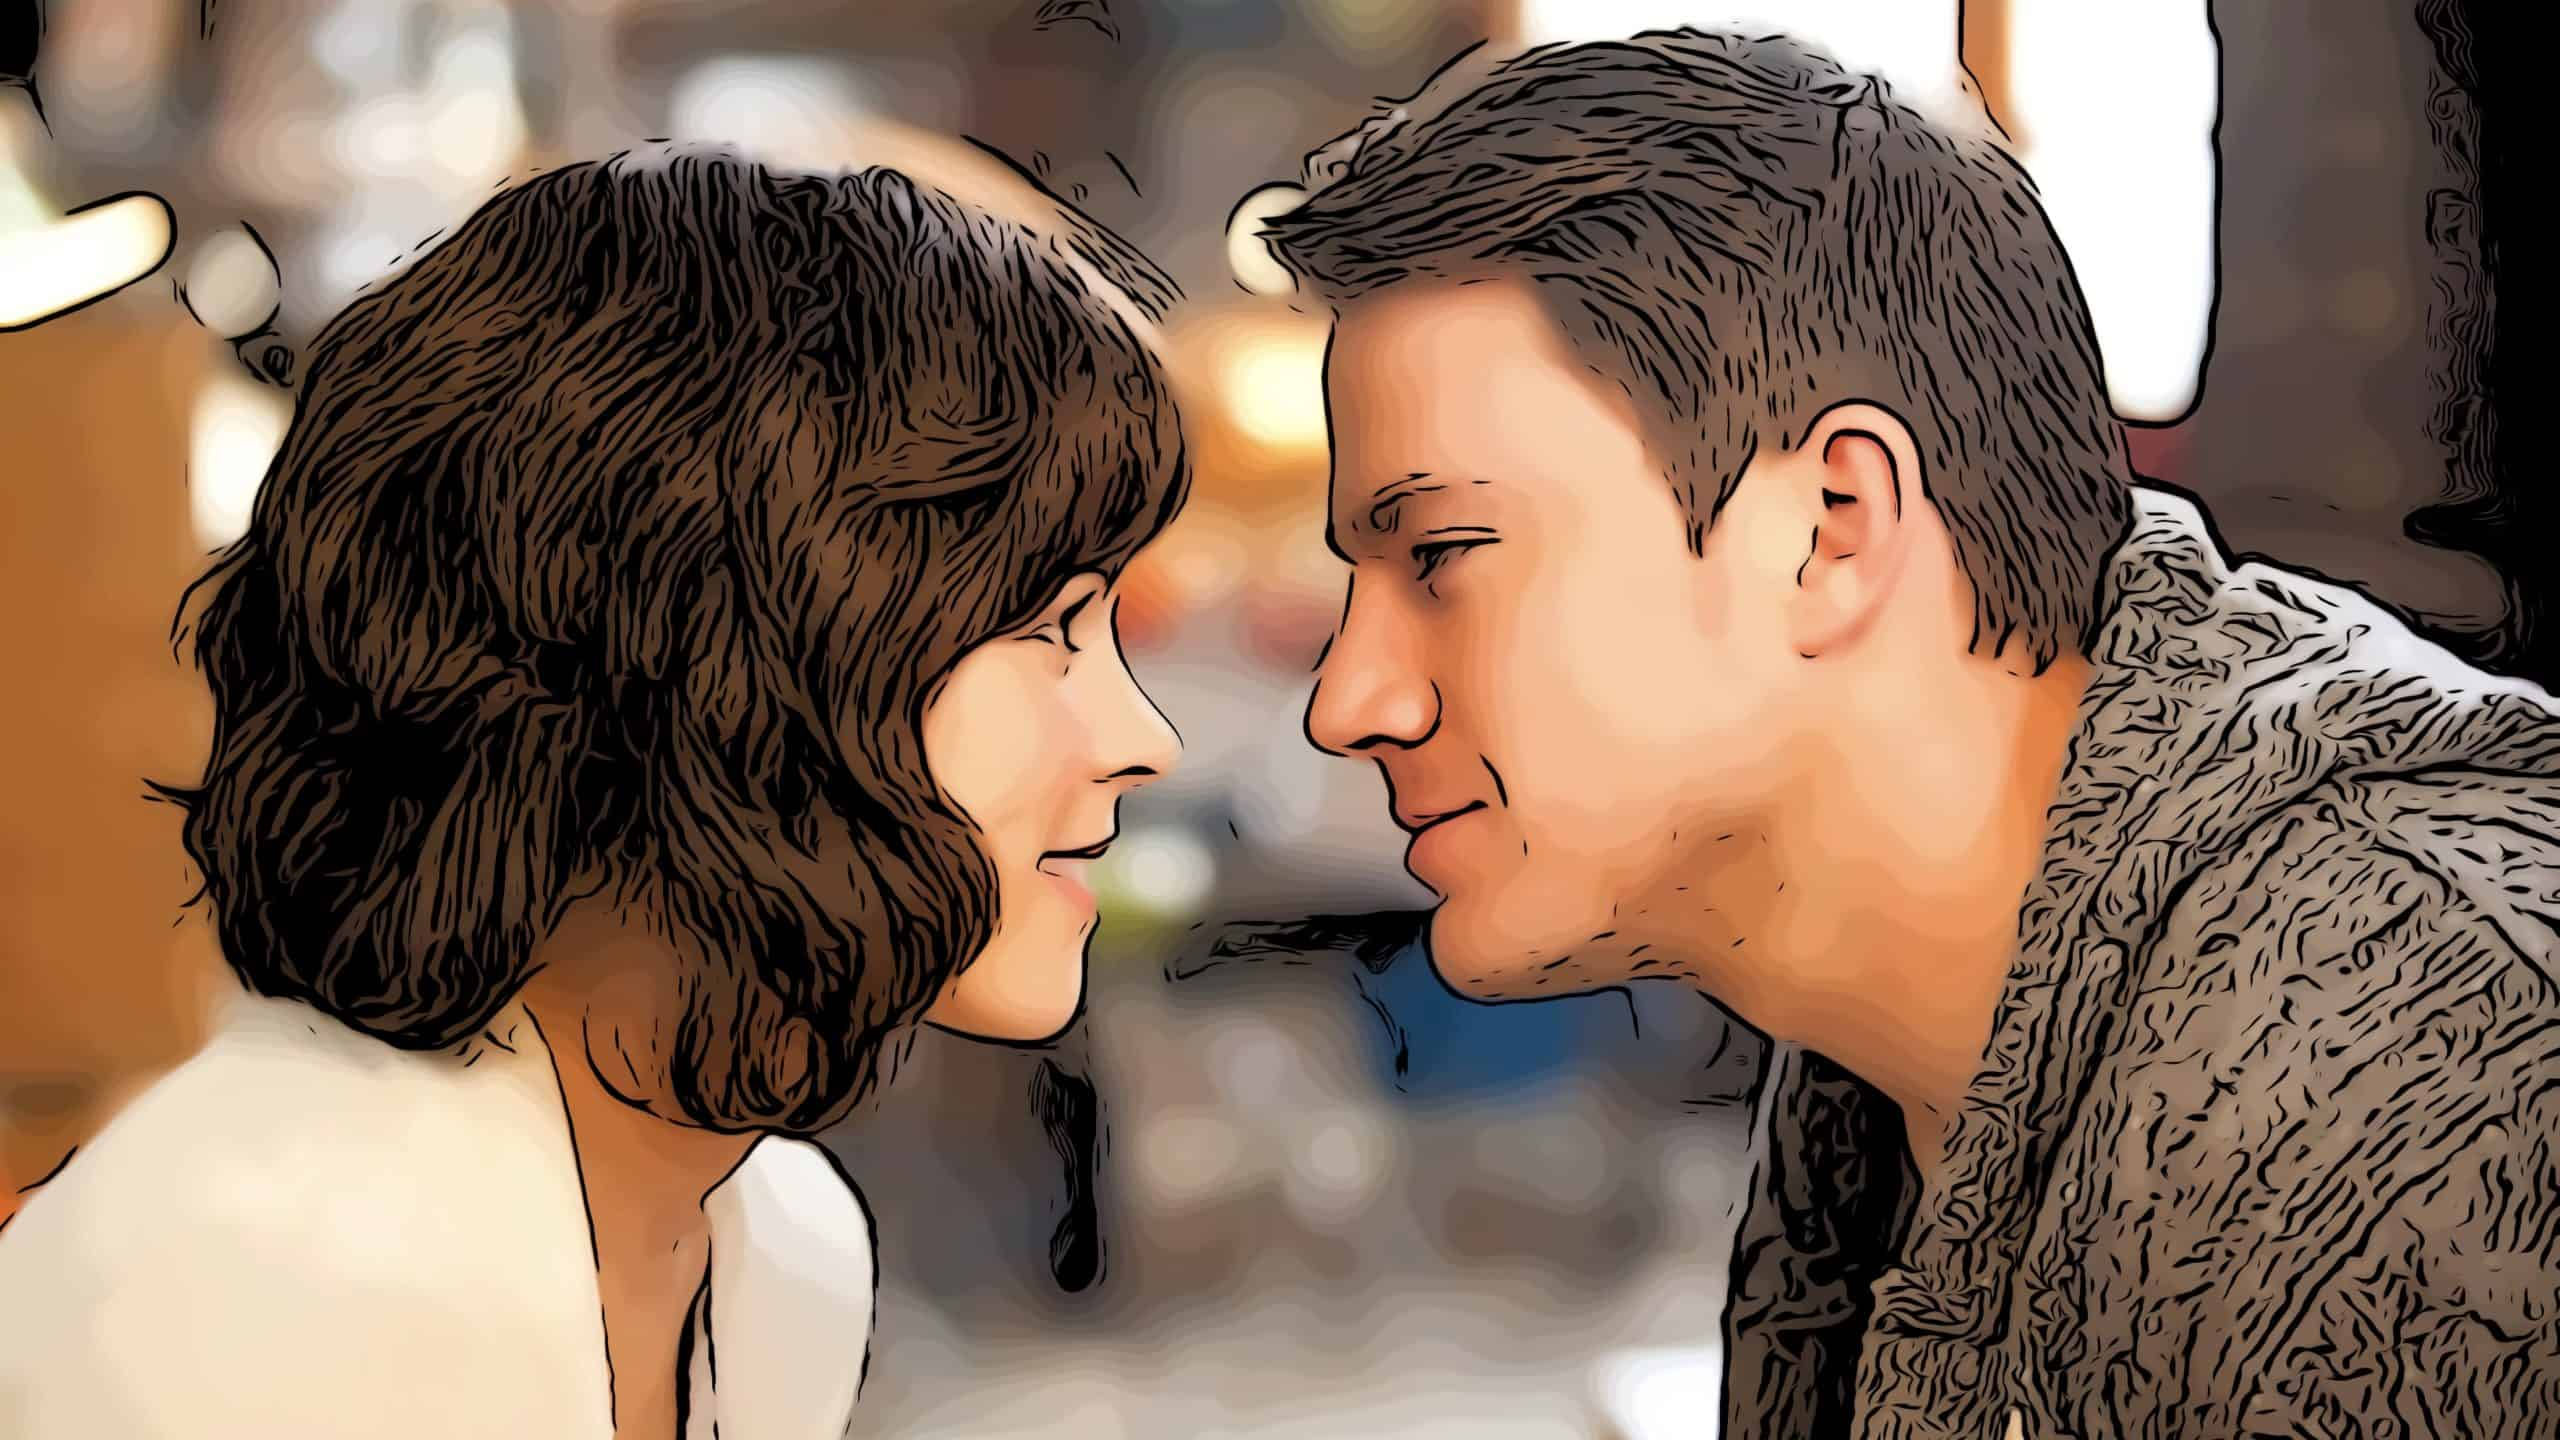 Scene from The Vow for movies like All The Bright Places post.